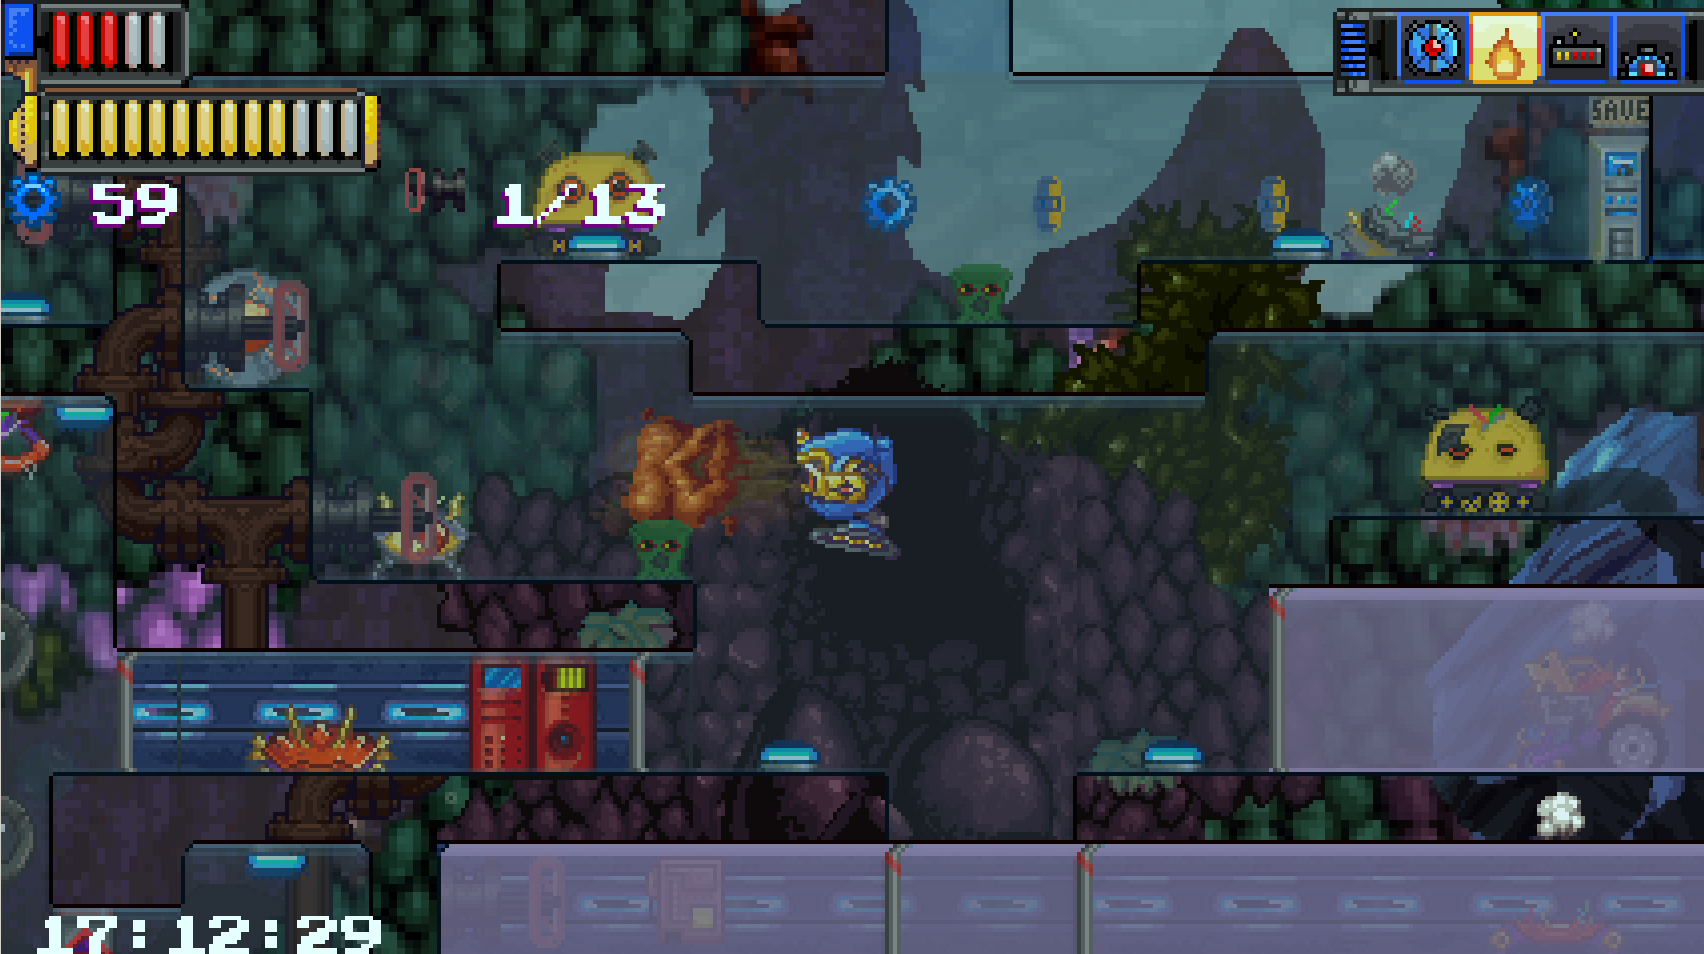 Terrian Saga: KR-17 goes back to the '90s for classic platforming